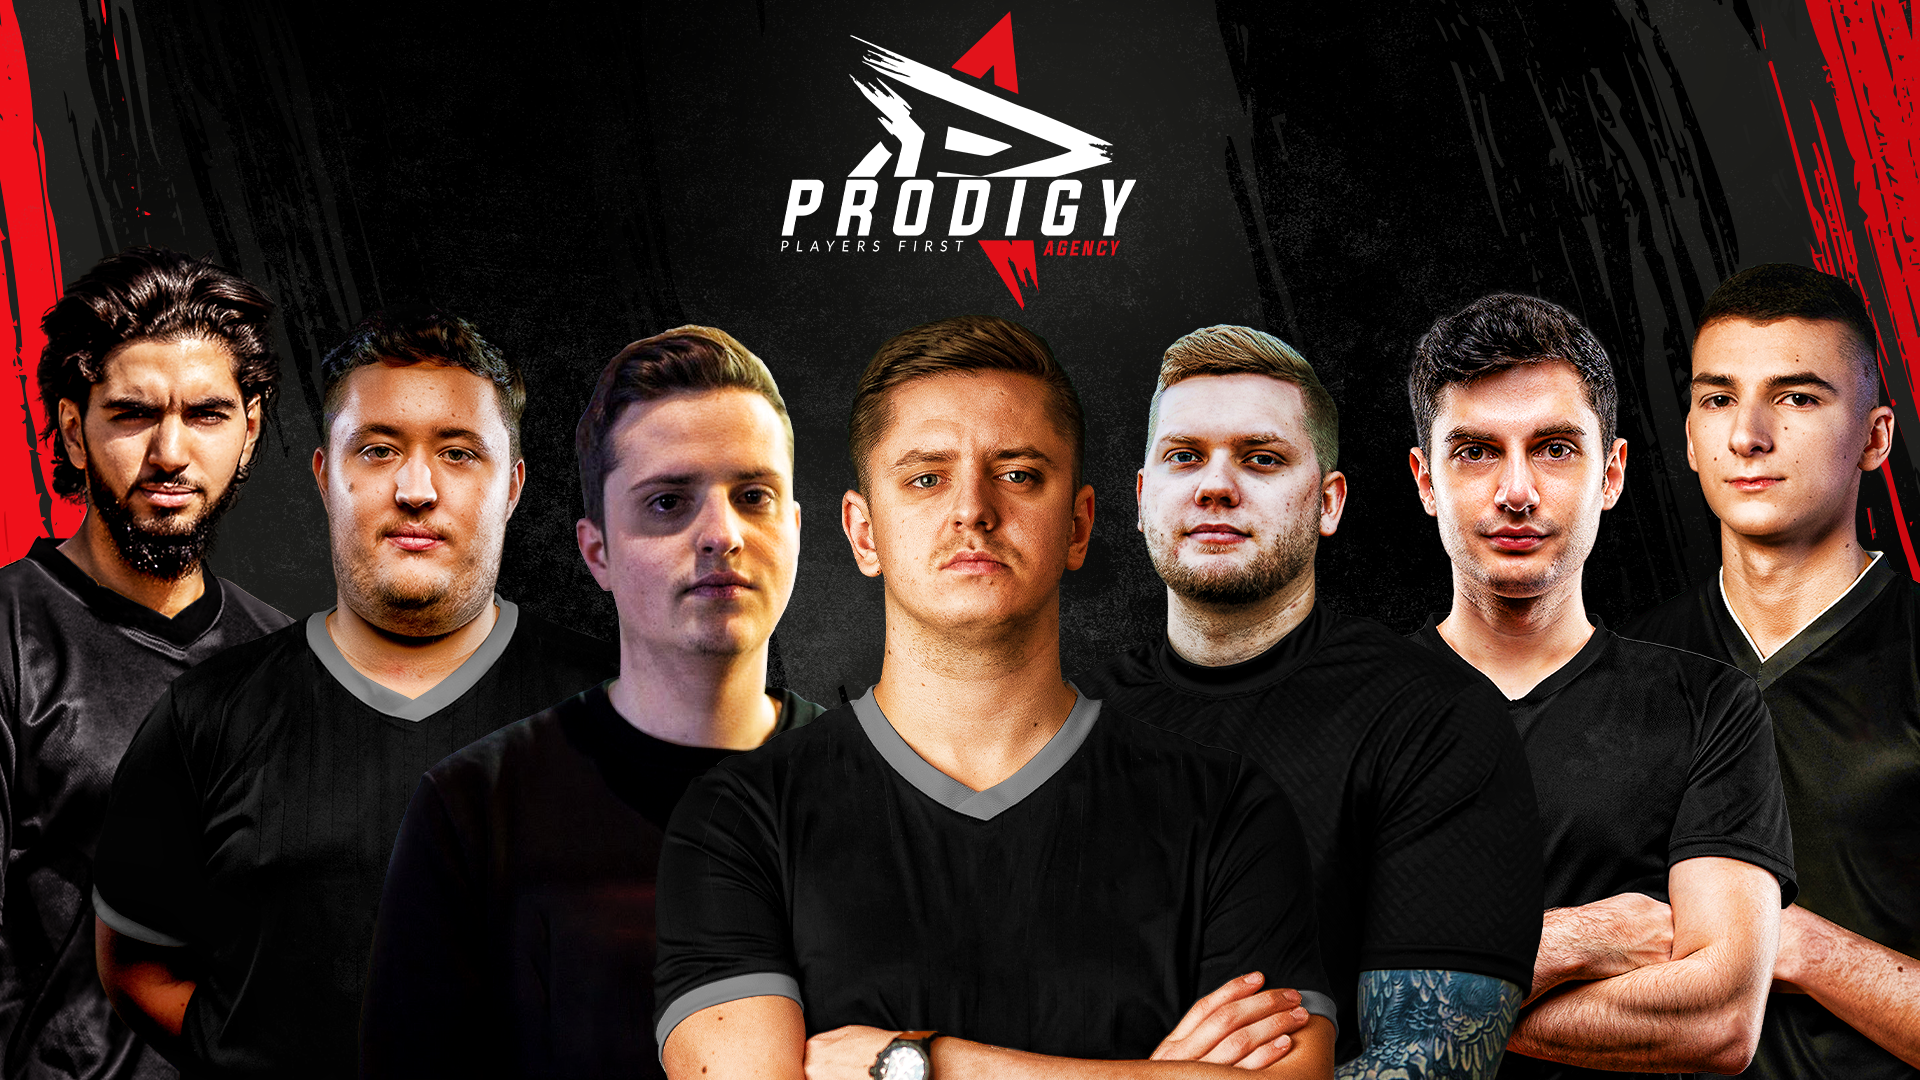 PRODIGY-AGENCY-Players_First.png